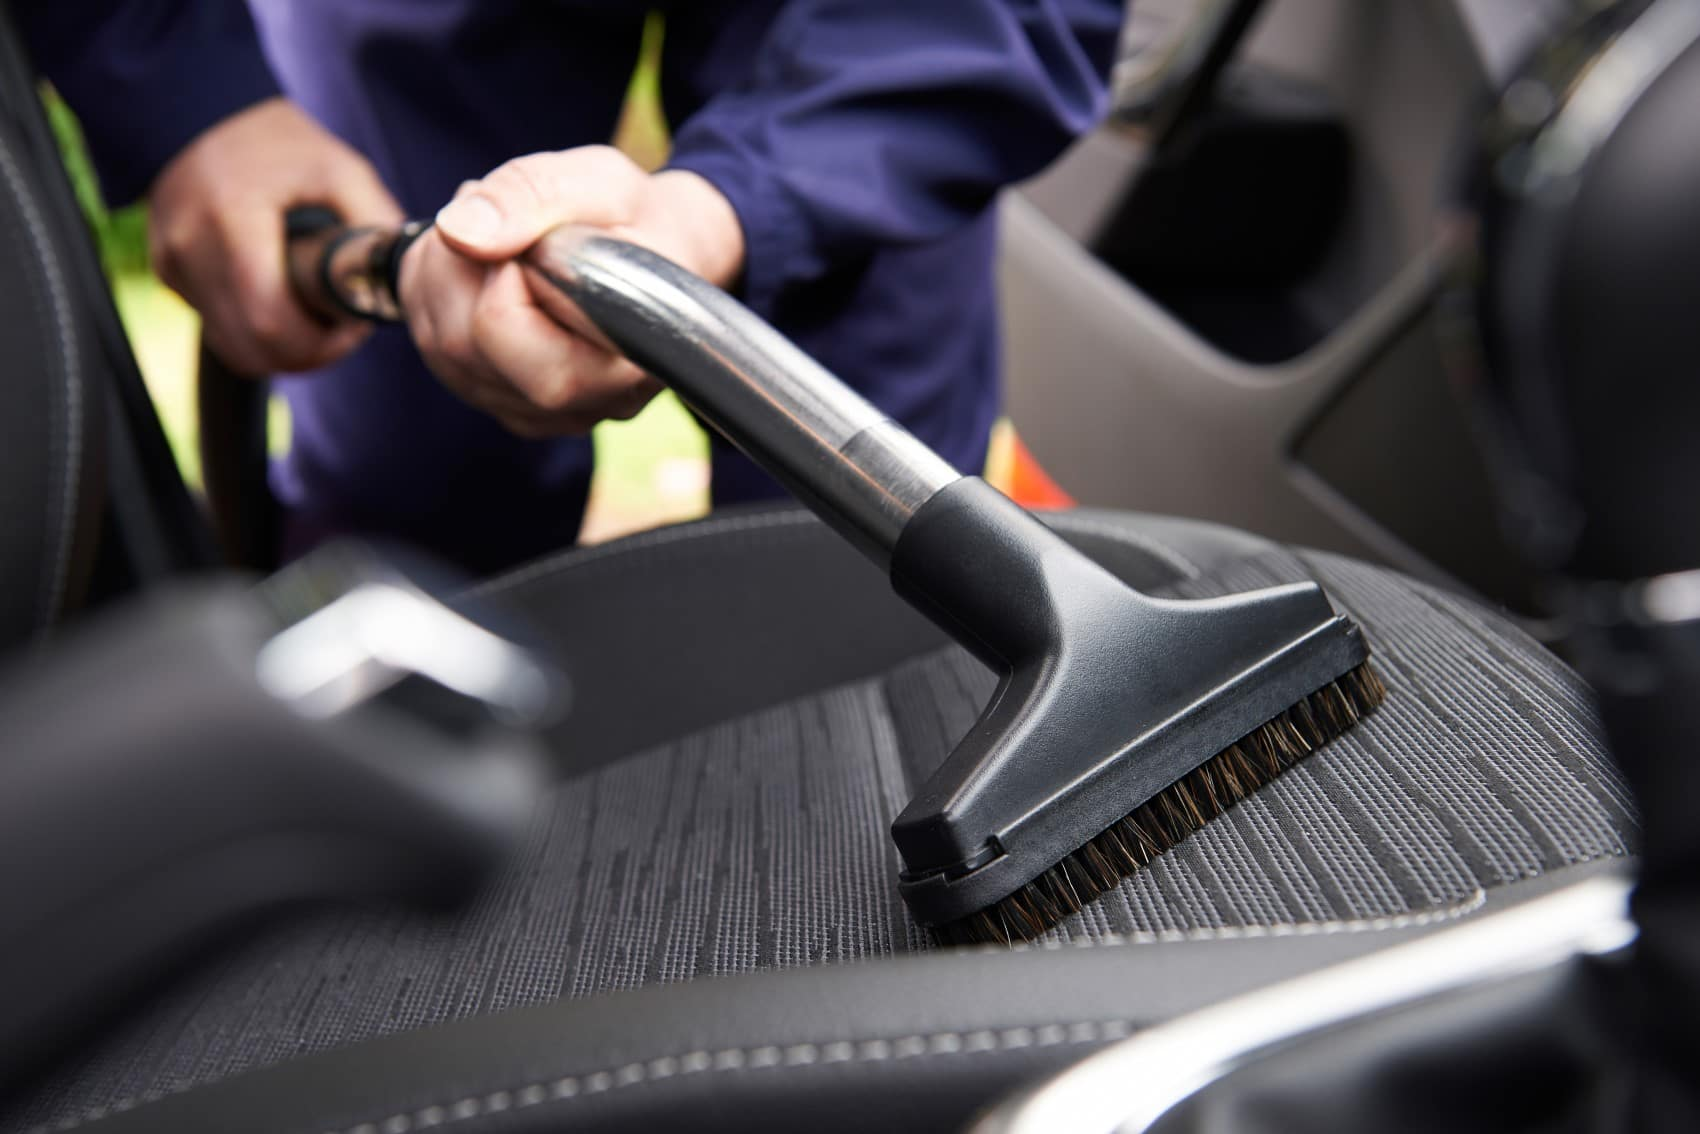 Person vacuuming out interior of vehicle